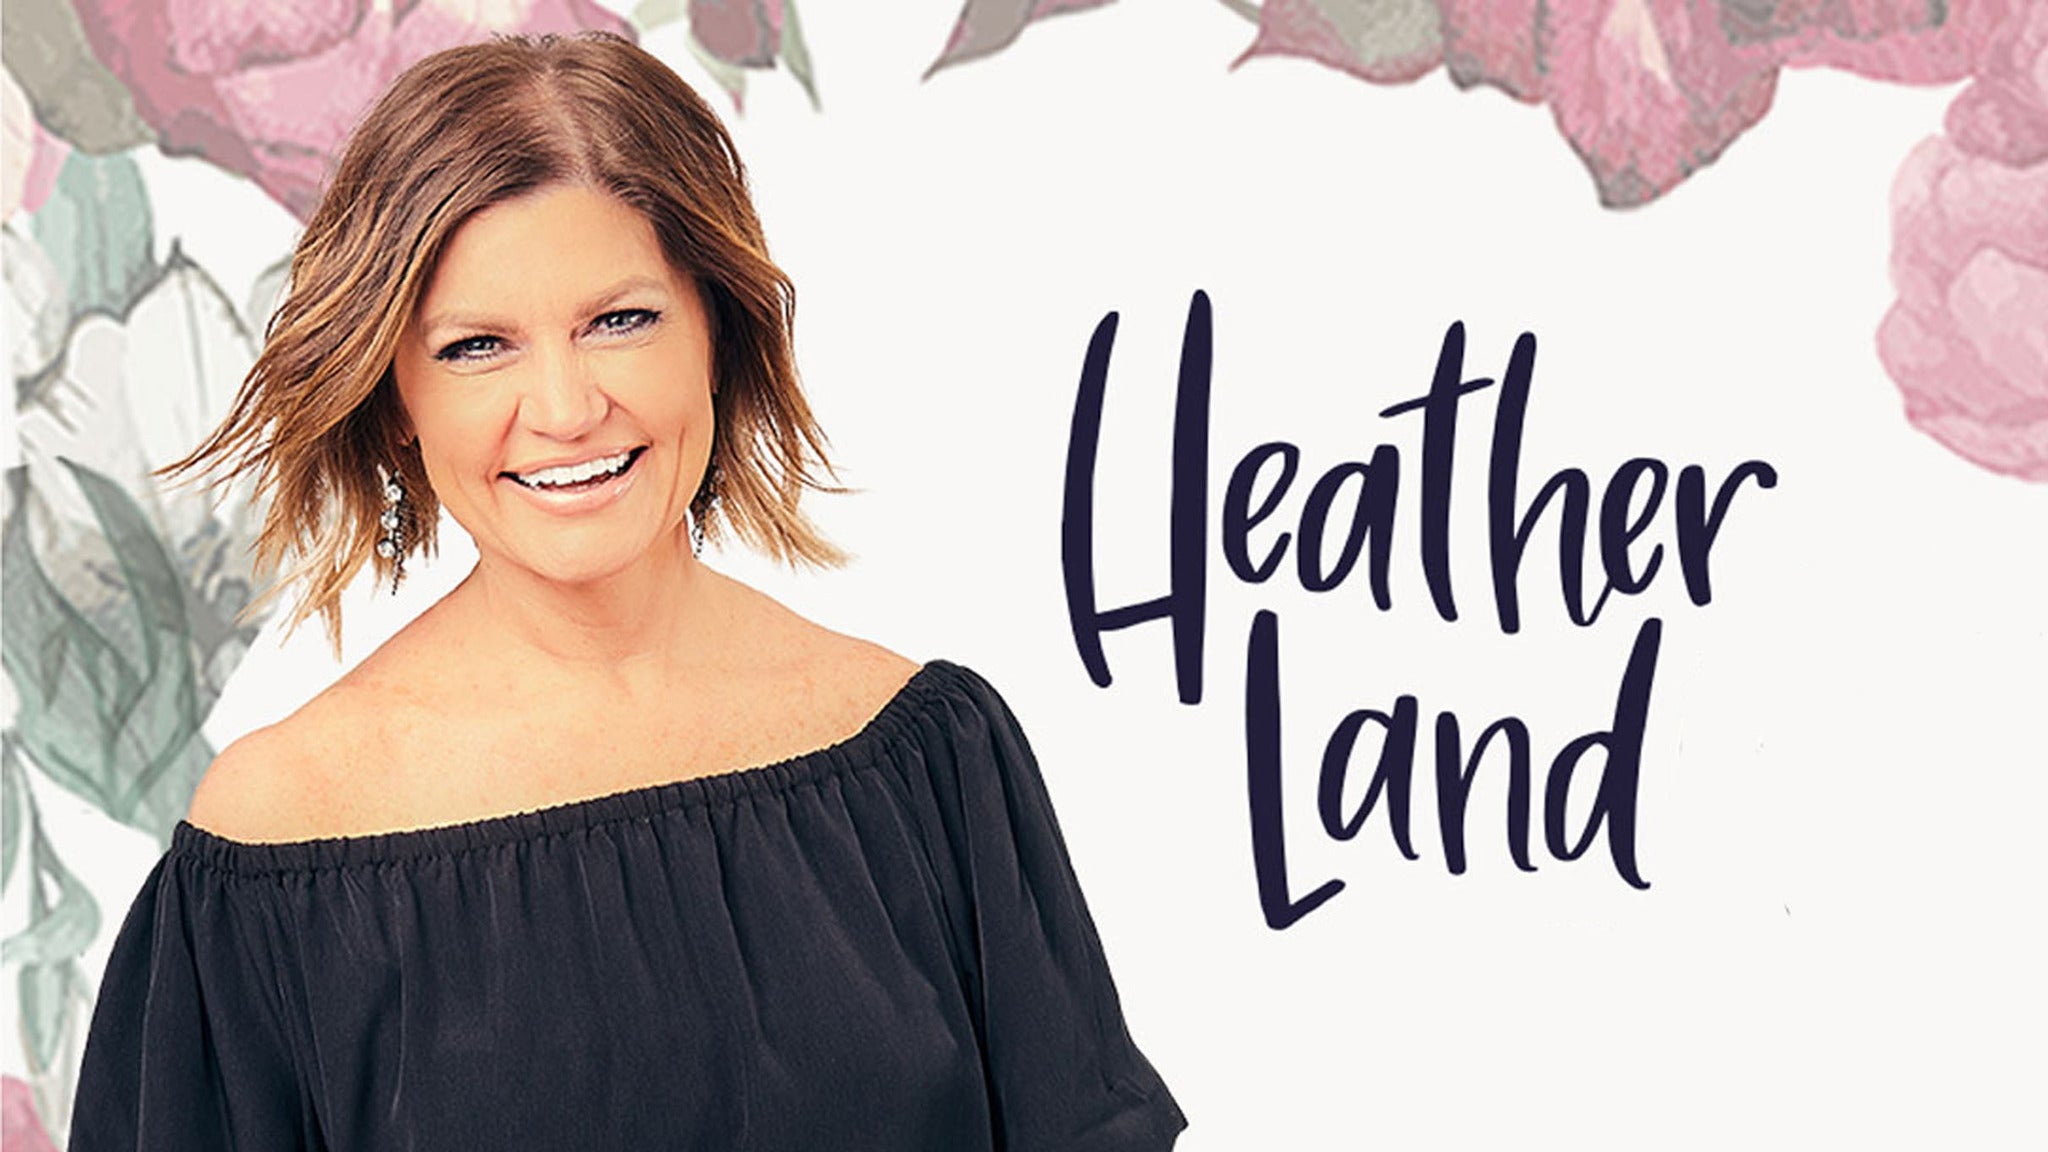 Jen Hatmaker and Heather Land : Hot Summer Nights Tour